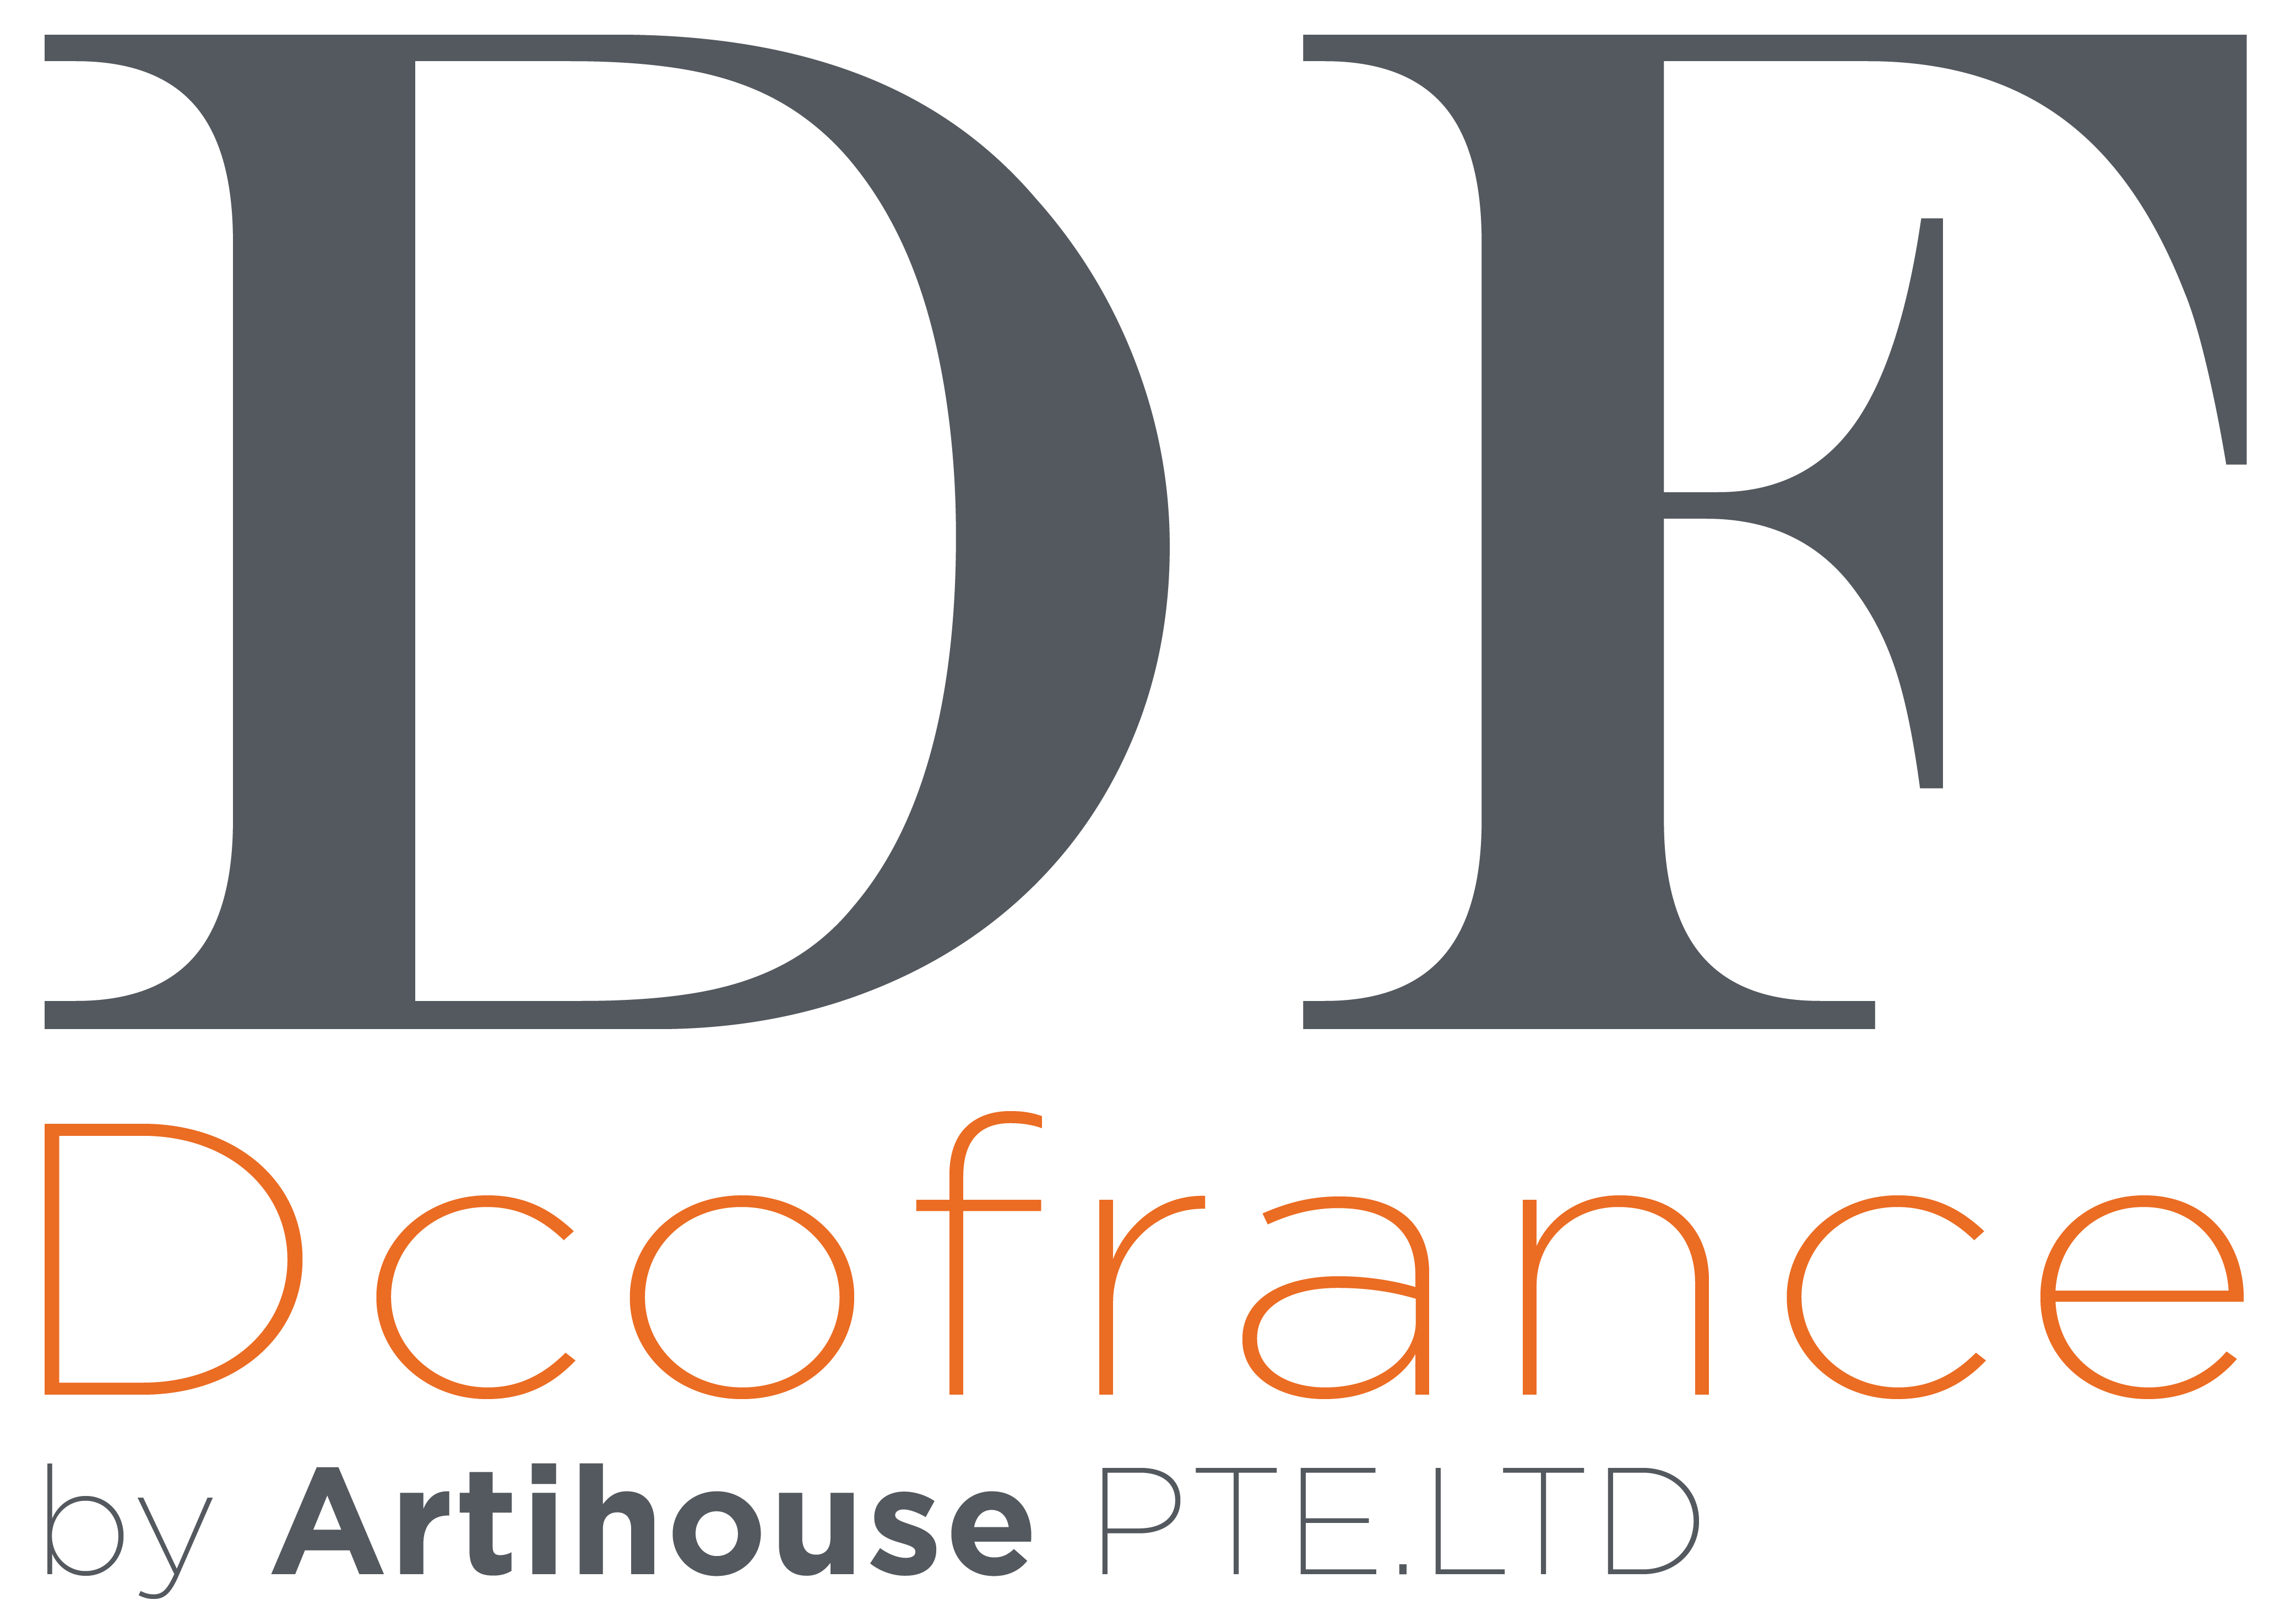 cropped-Dcofrance-Logo-2021.png